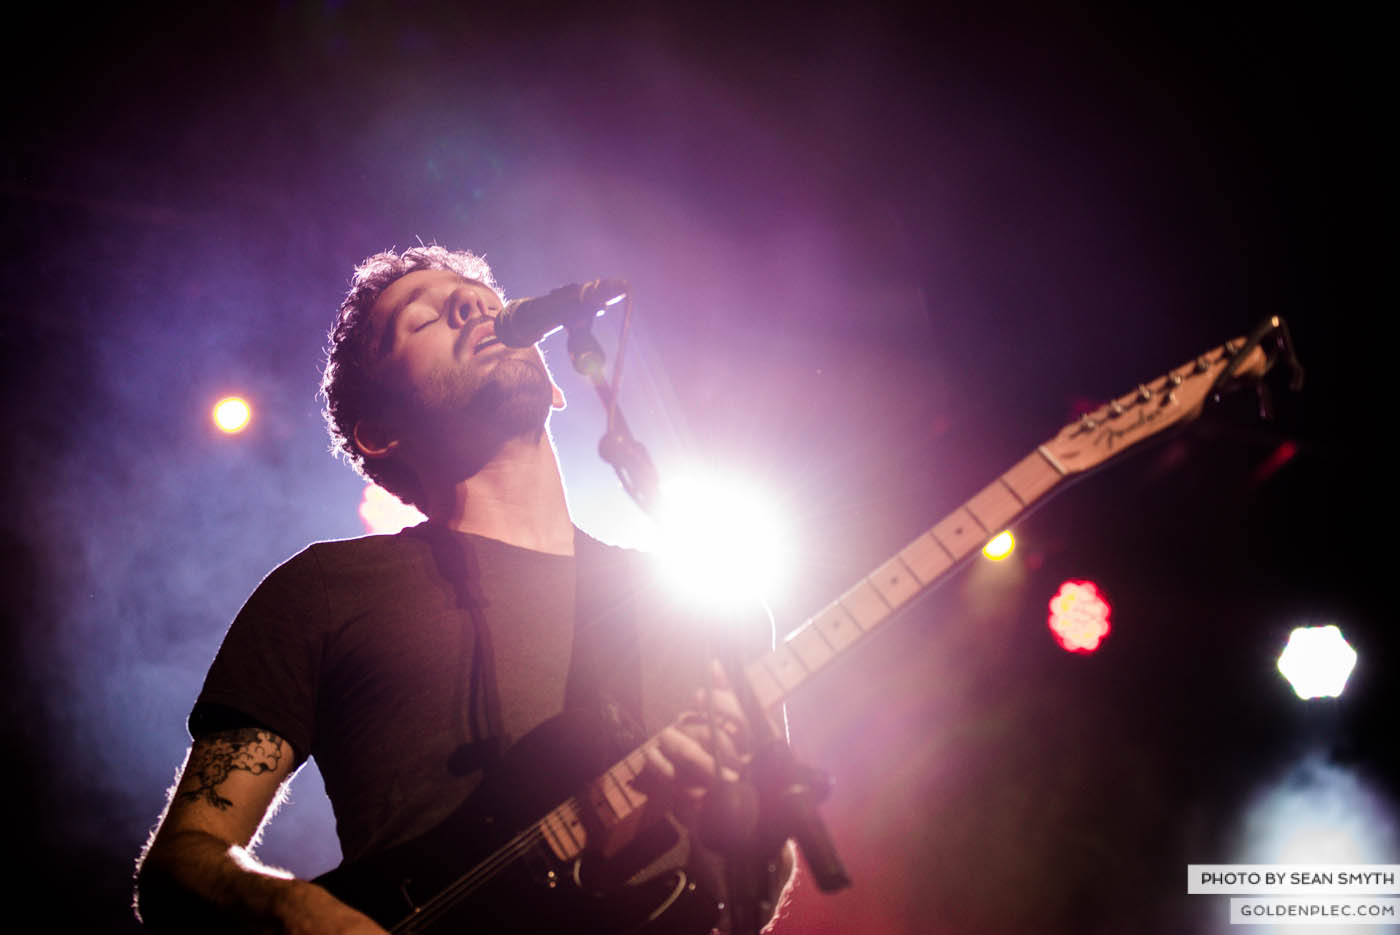 the-antlers-at-the-olympia-theatre-by-sean-smyth-30-10-14-16-of-22